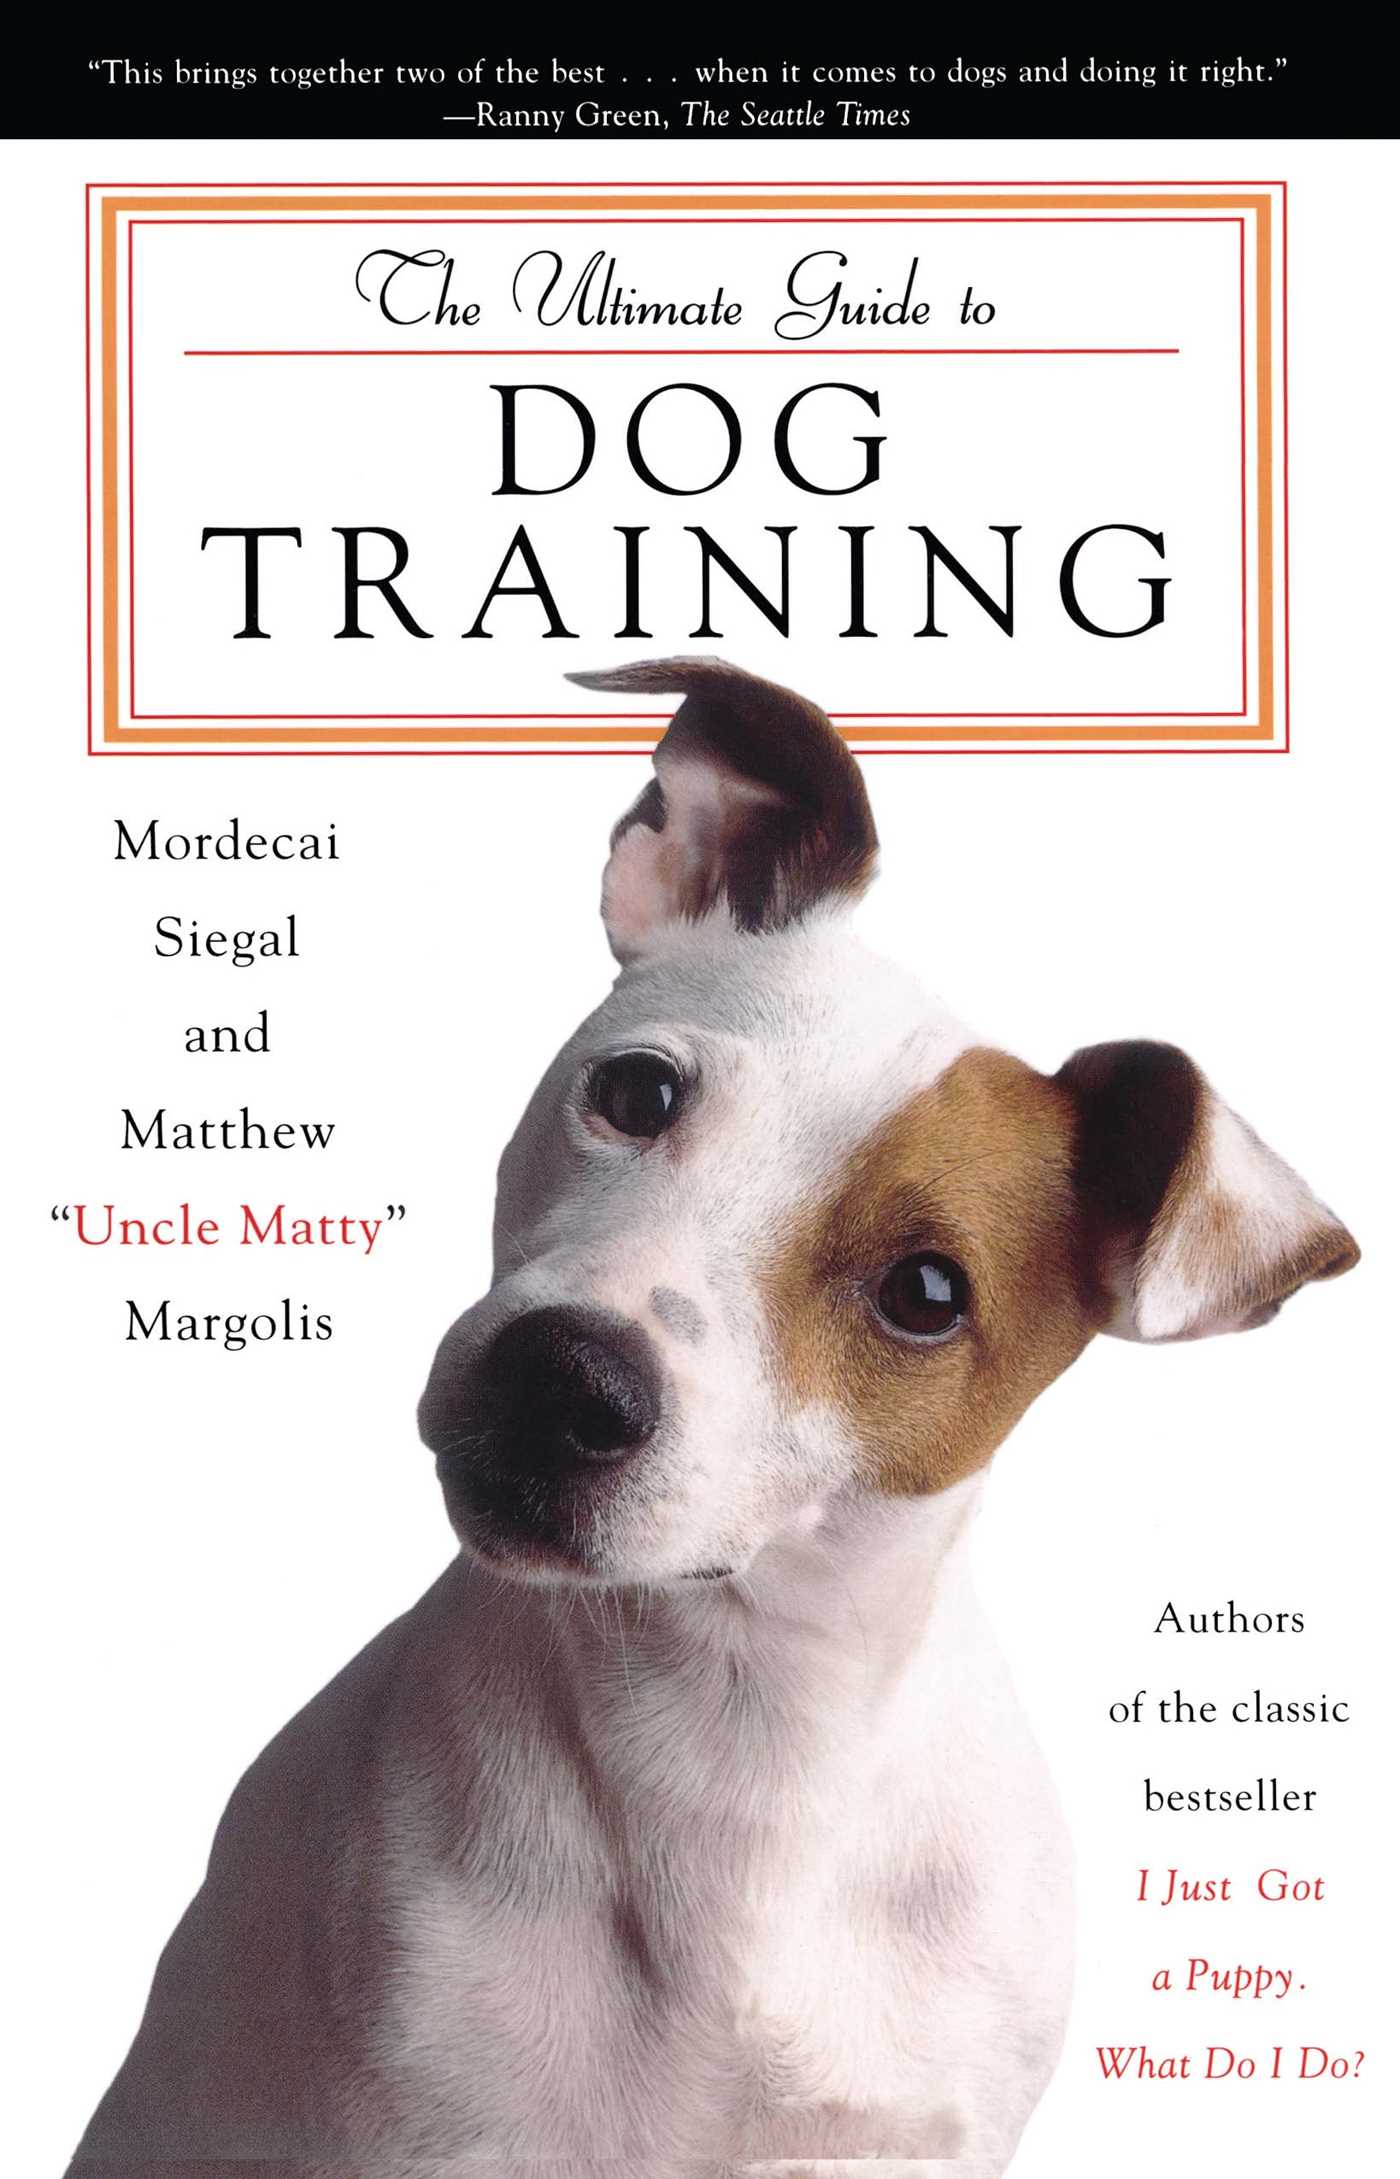 The-ultimate-guide-to-dog-training-9780684856469_hr